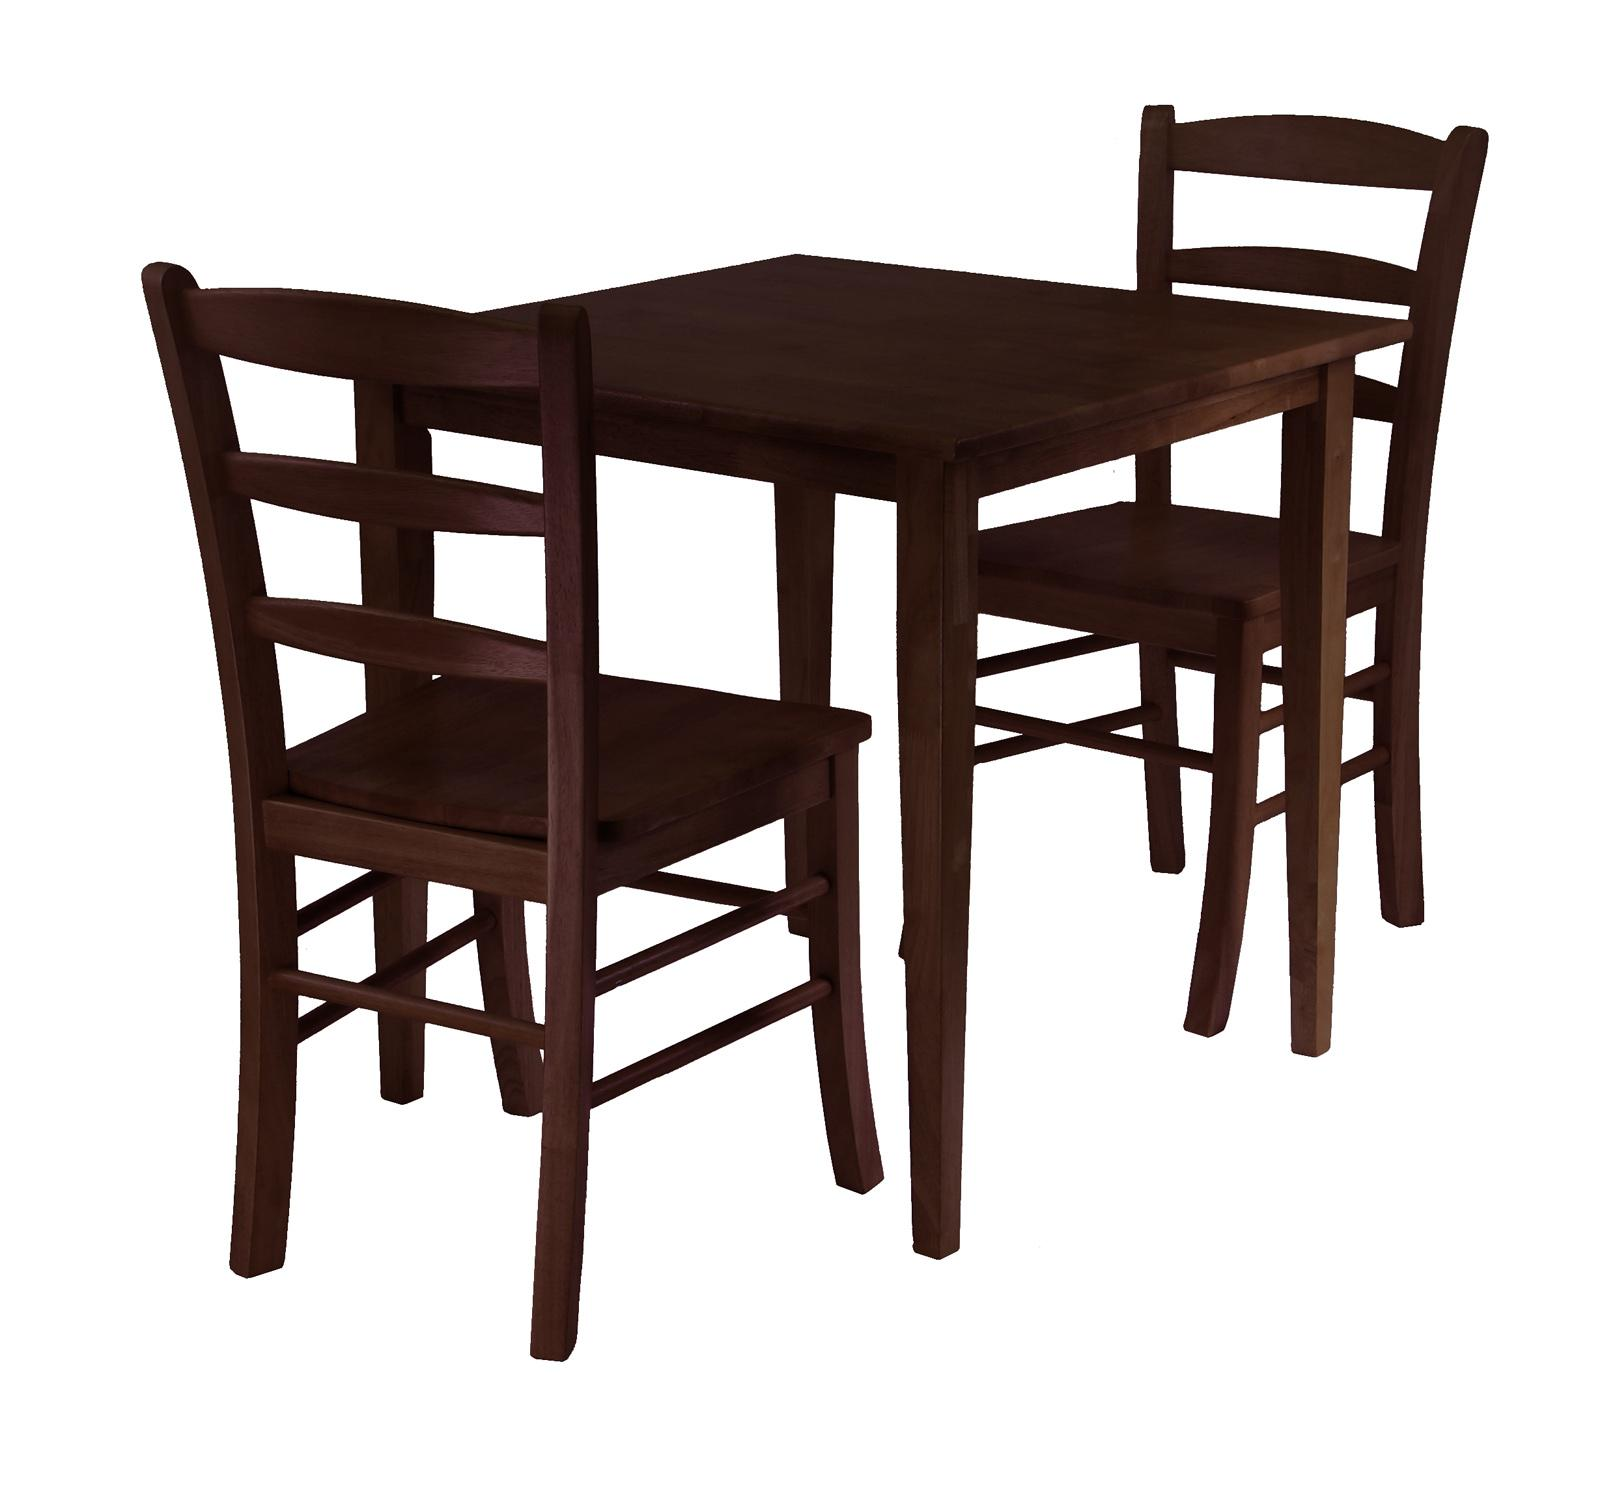 Groveland 3pc square dining table with 2 chairs ojcommerce for Table and chair set